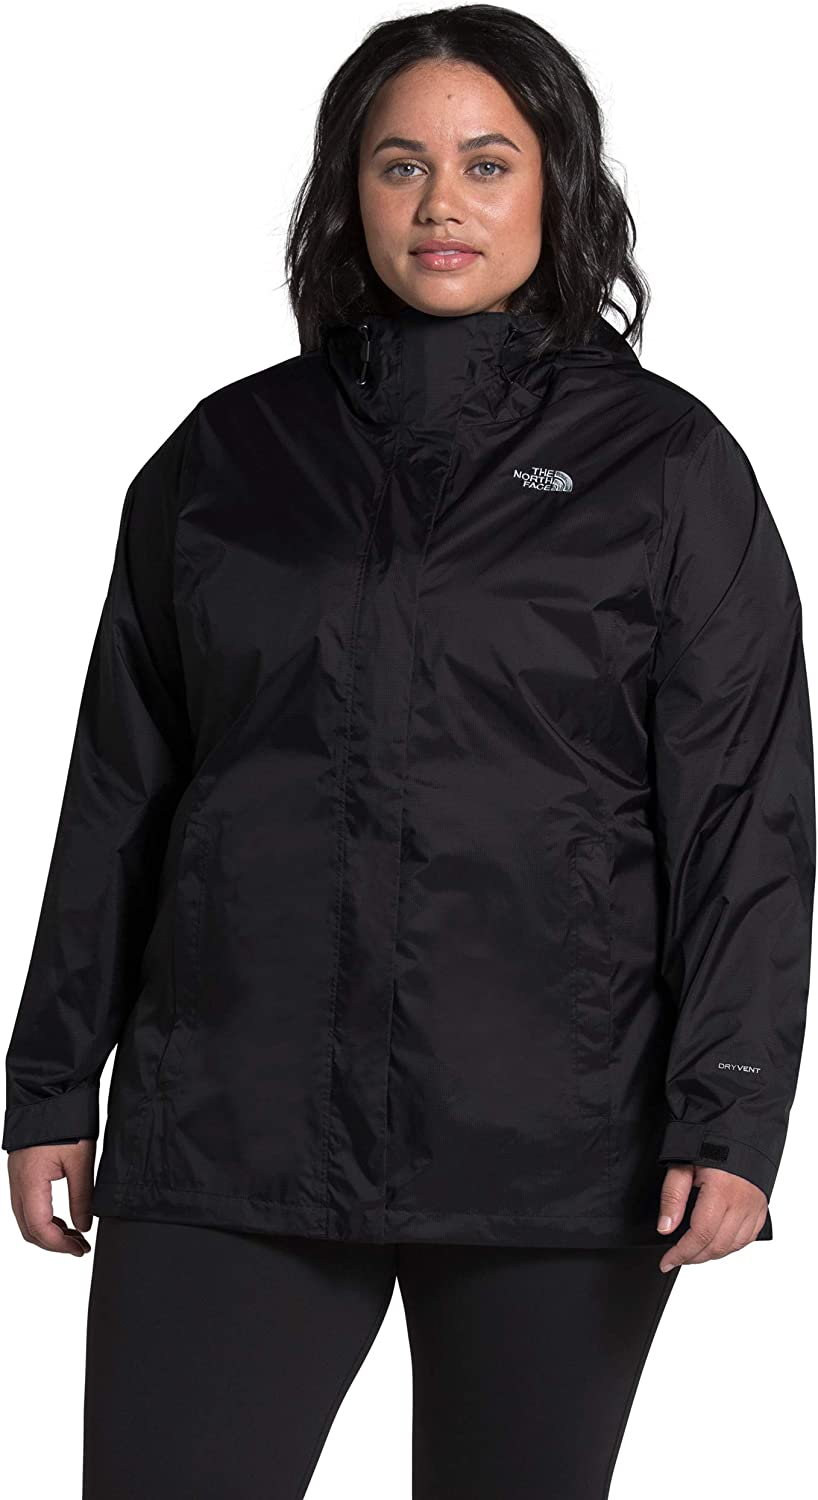 The North Face Women's Plus Size Venture 2 Waterproof Hooded Rain Jacket: Clothing